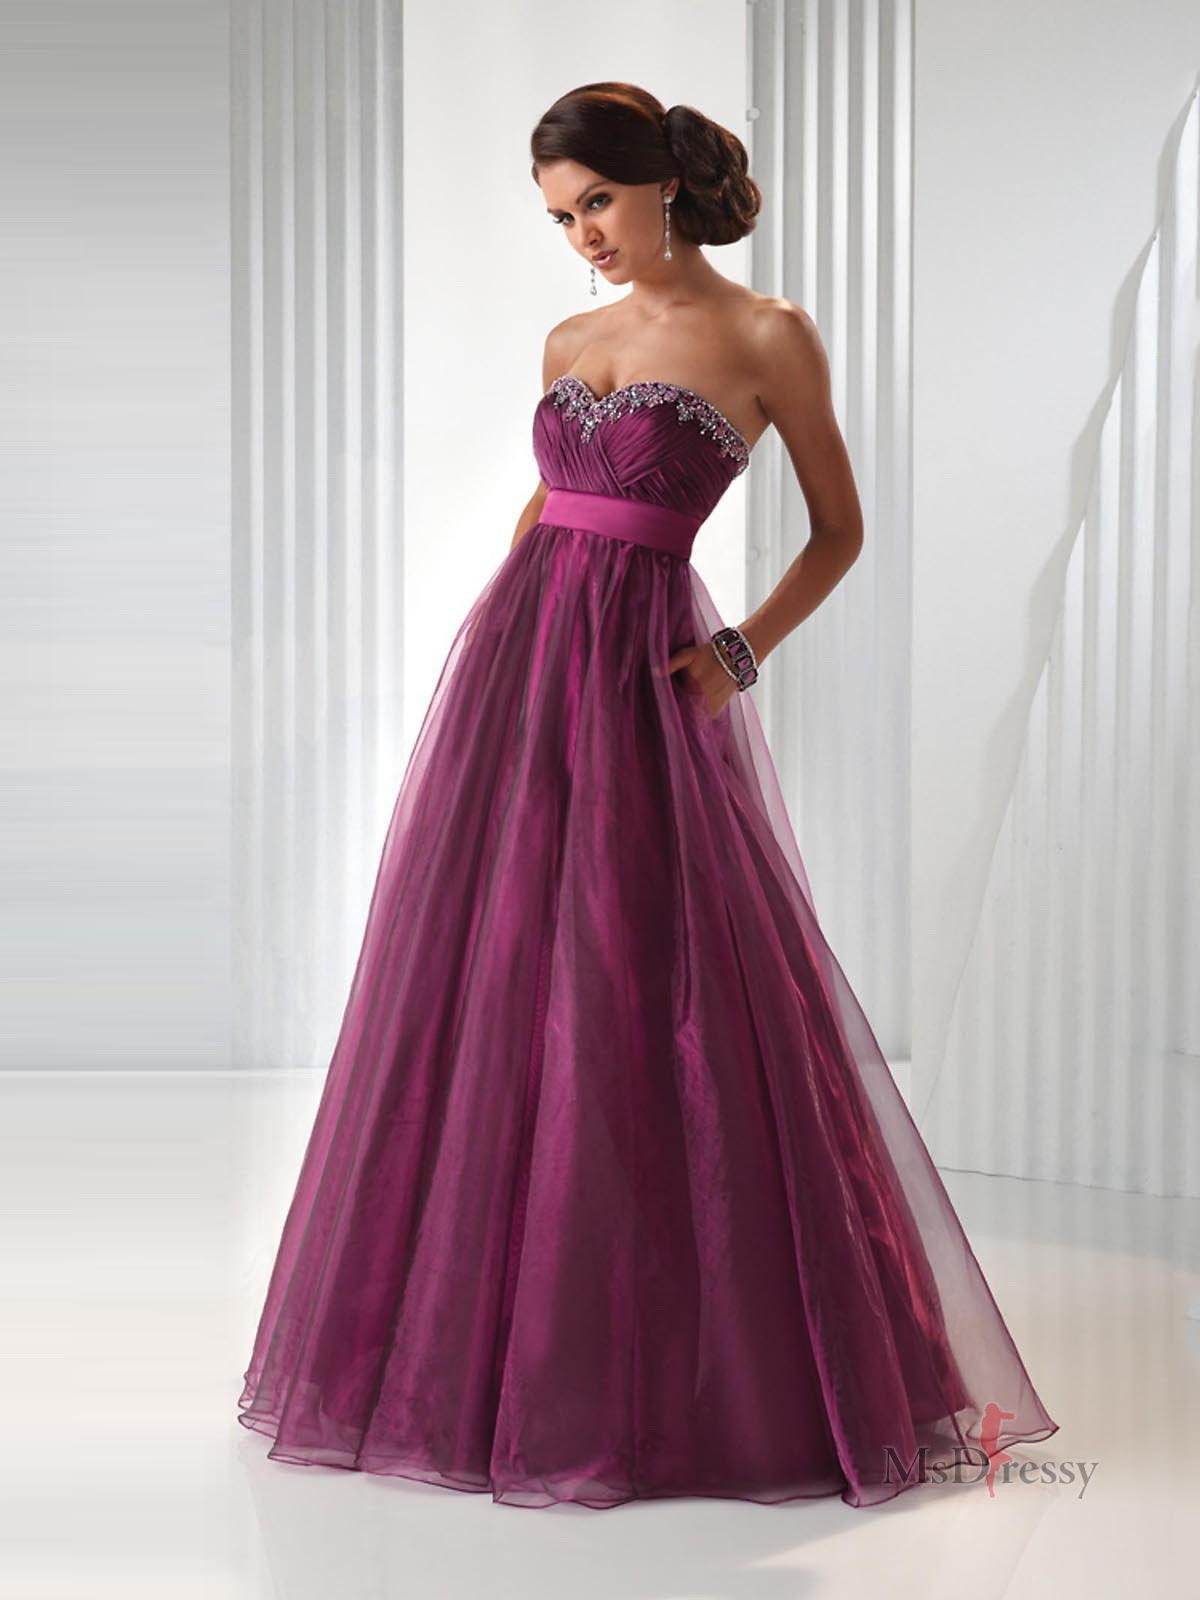 Empire Sweetheart Floor-length Tulle Popular Prom Dress with Beading at Msdressy